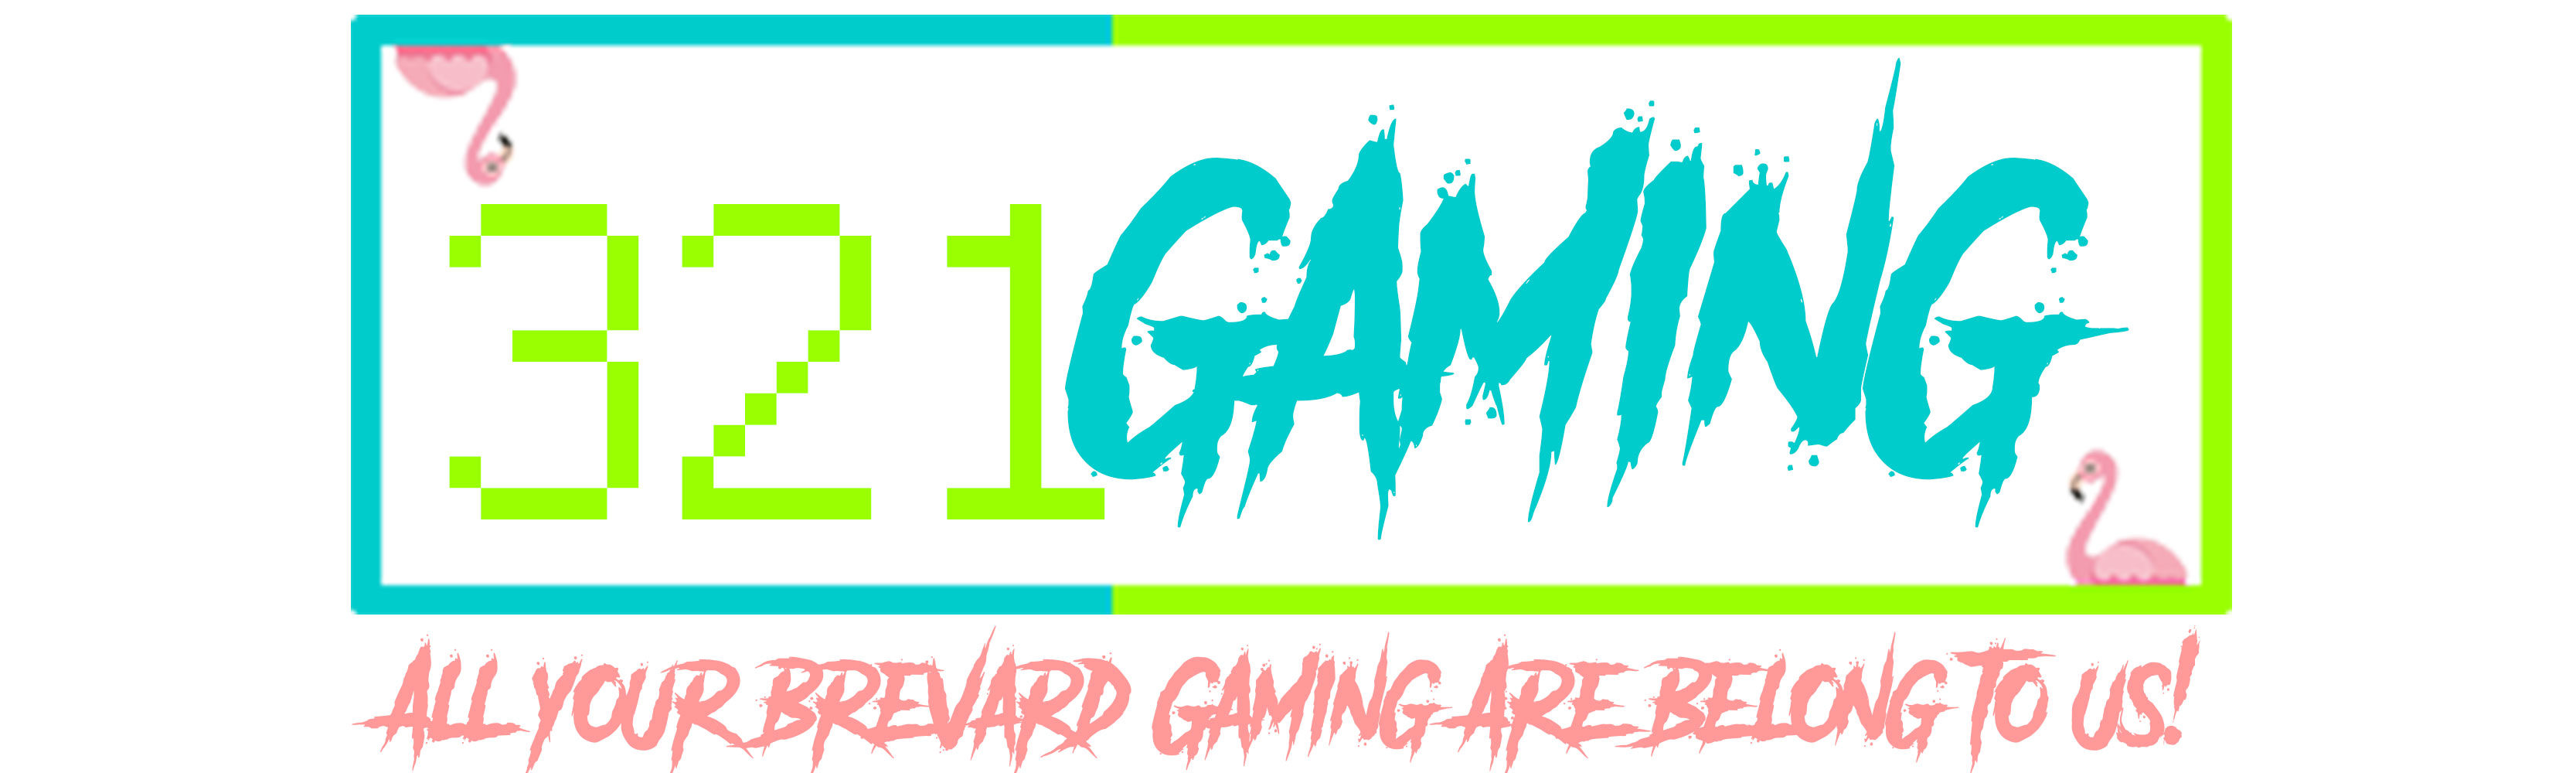 321 Gaming LLC – Florida SpaceCoast Events & Leagues